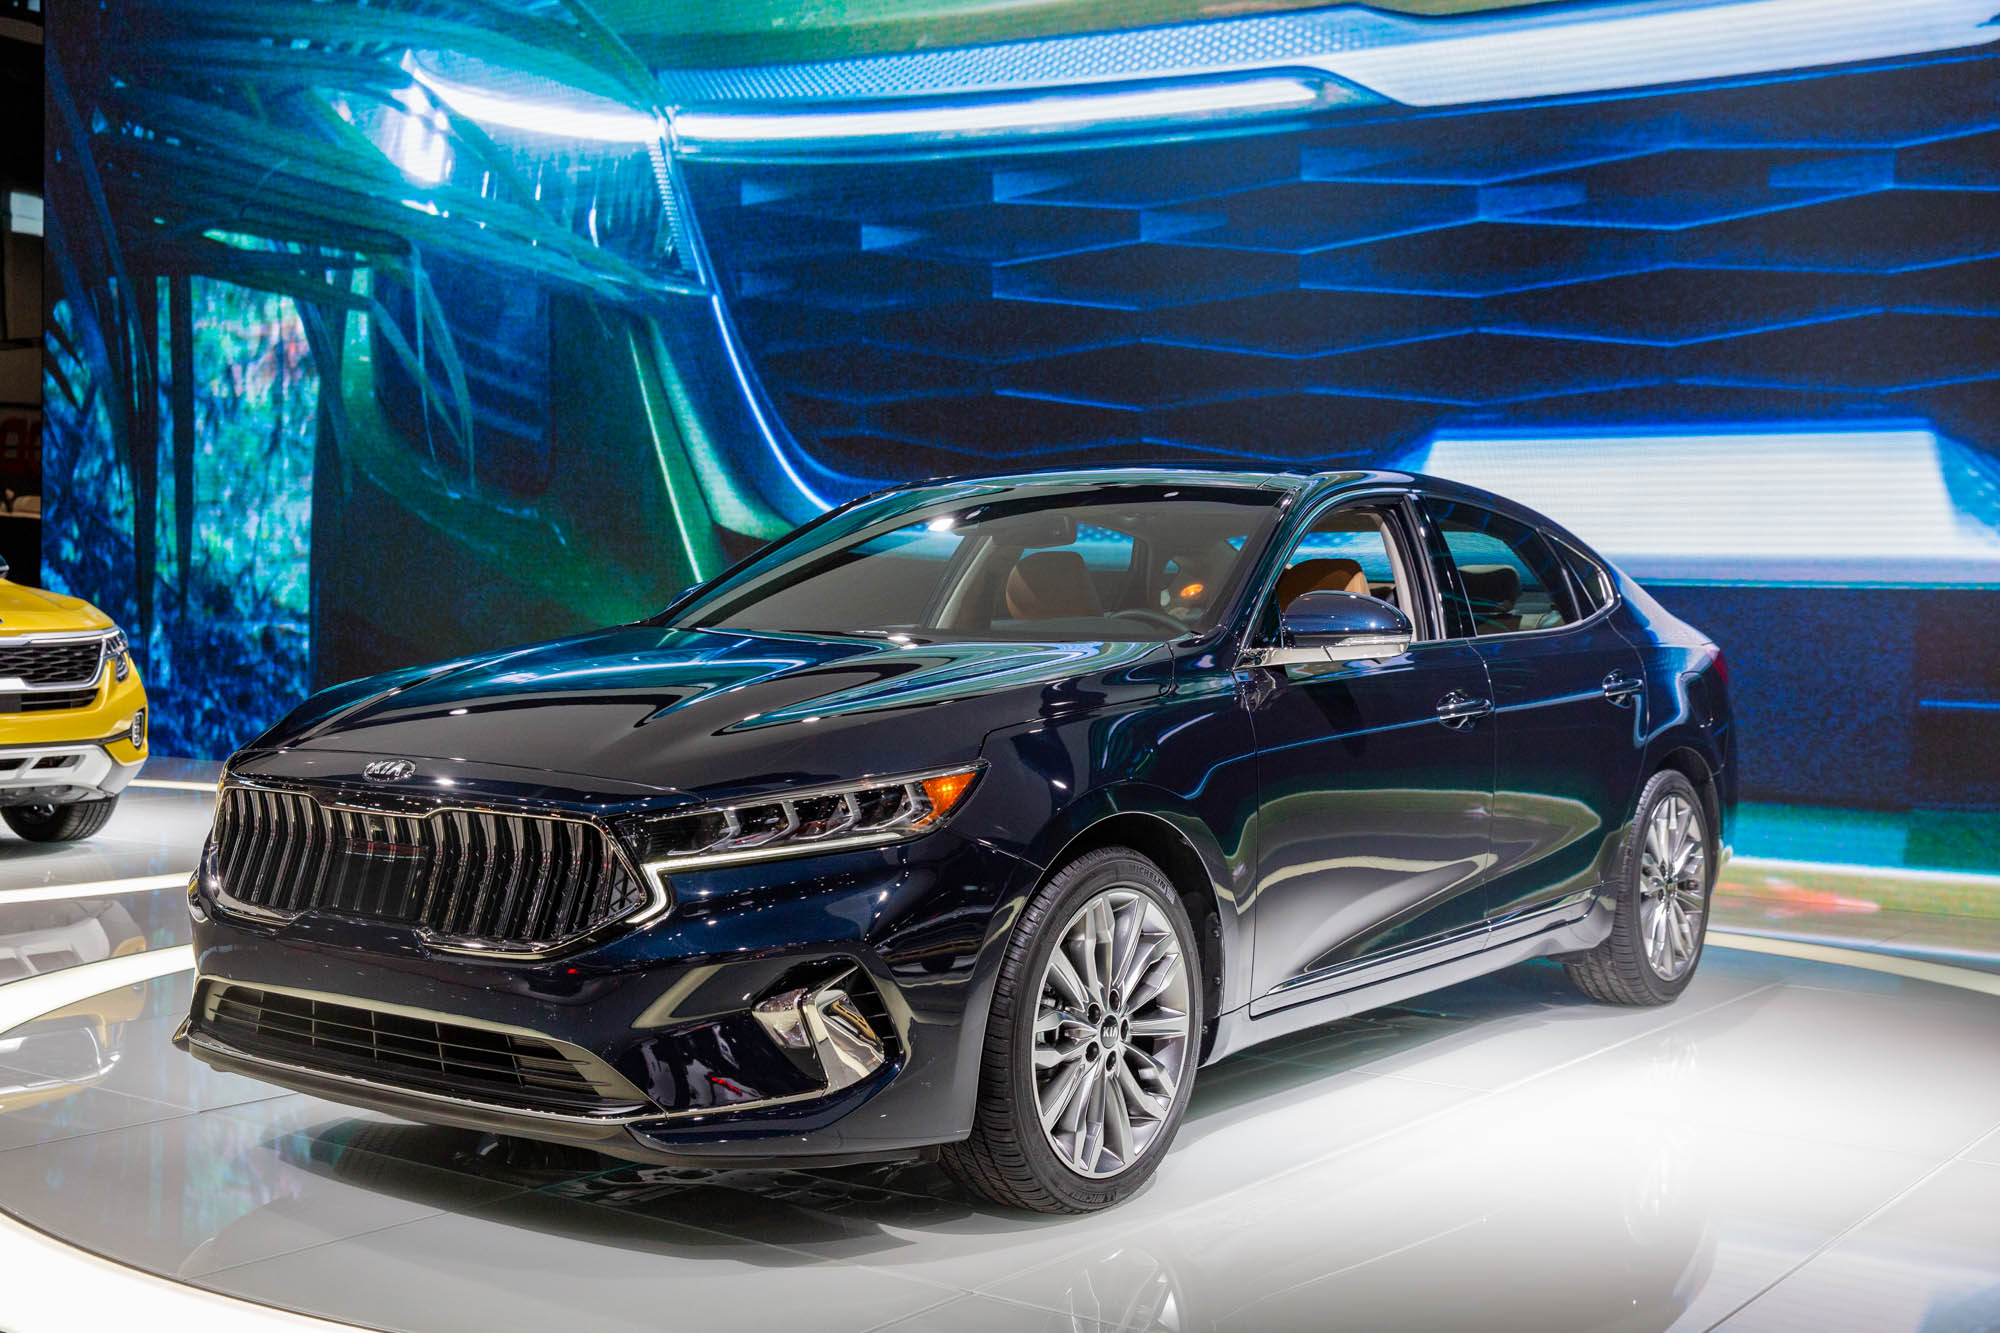 2020 Kia Cadenza Gets Better Looking, More Driver-Assistance - 2022 Kia Cadenza Limited Automatic Feature, Specs